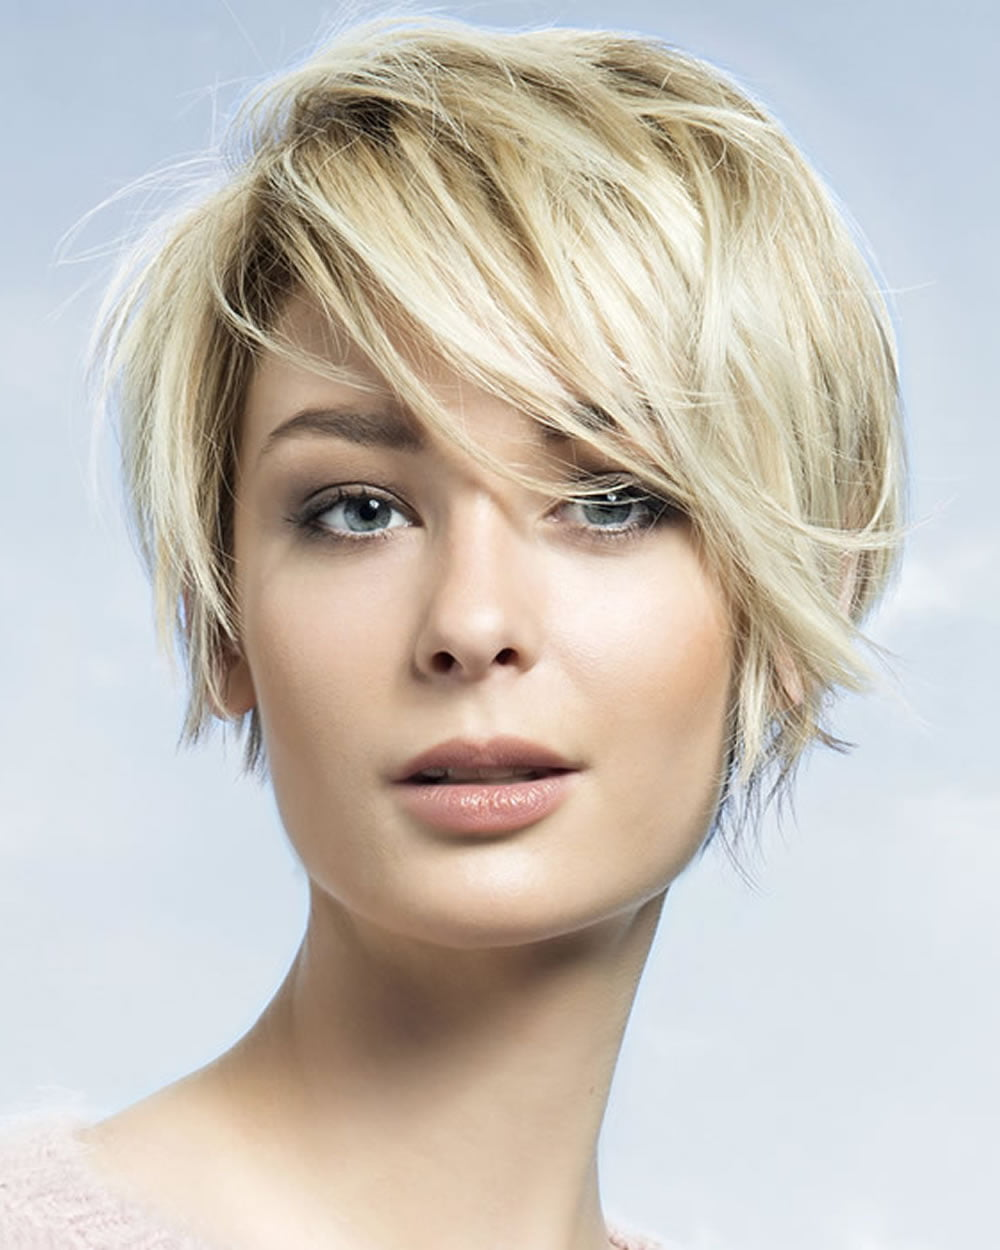 Latest Short Haircuts for Women Curly Wavy Straight Hair Ideas  Page 4  HAIRSTYLES